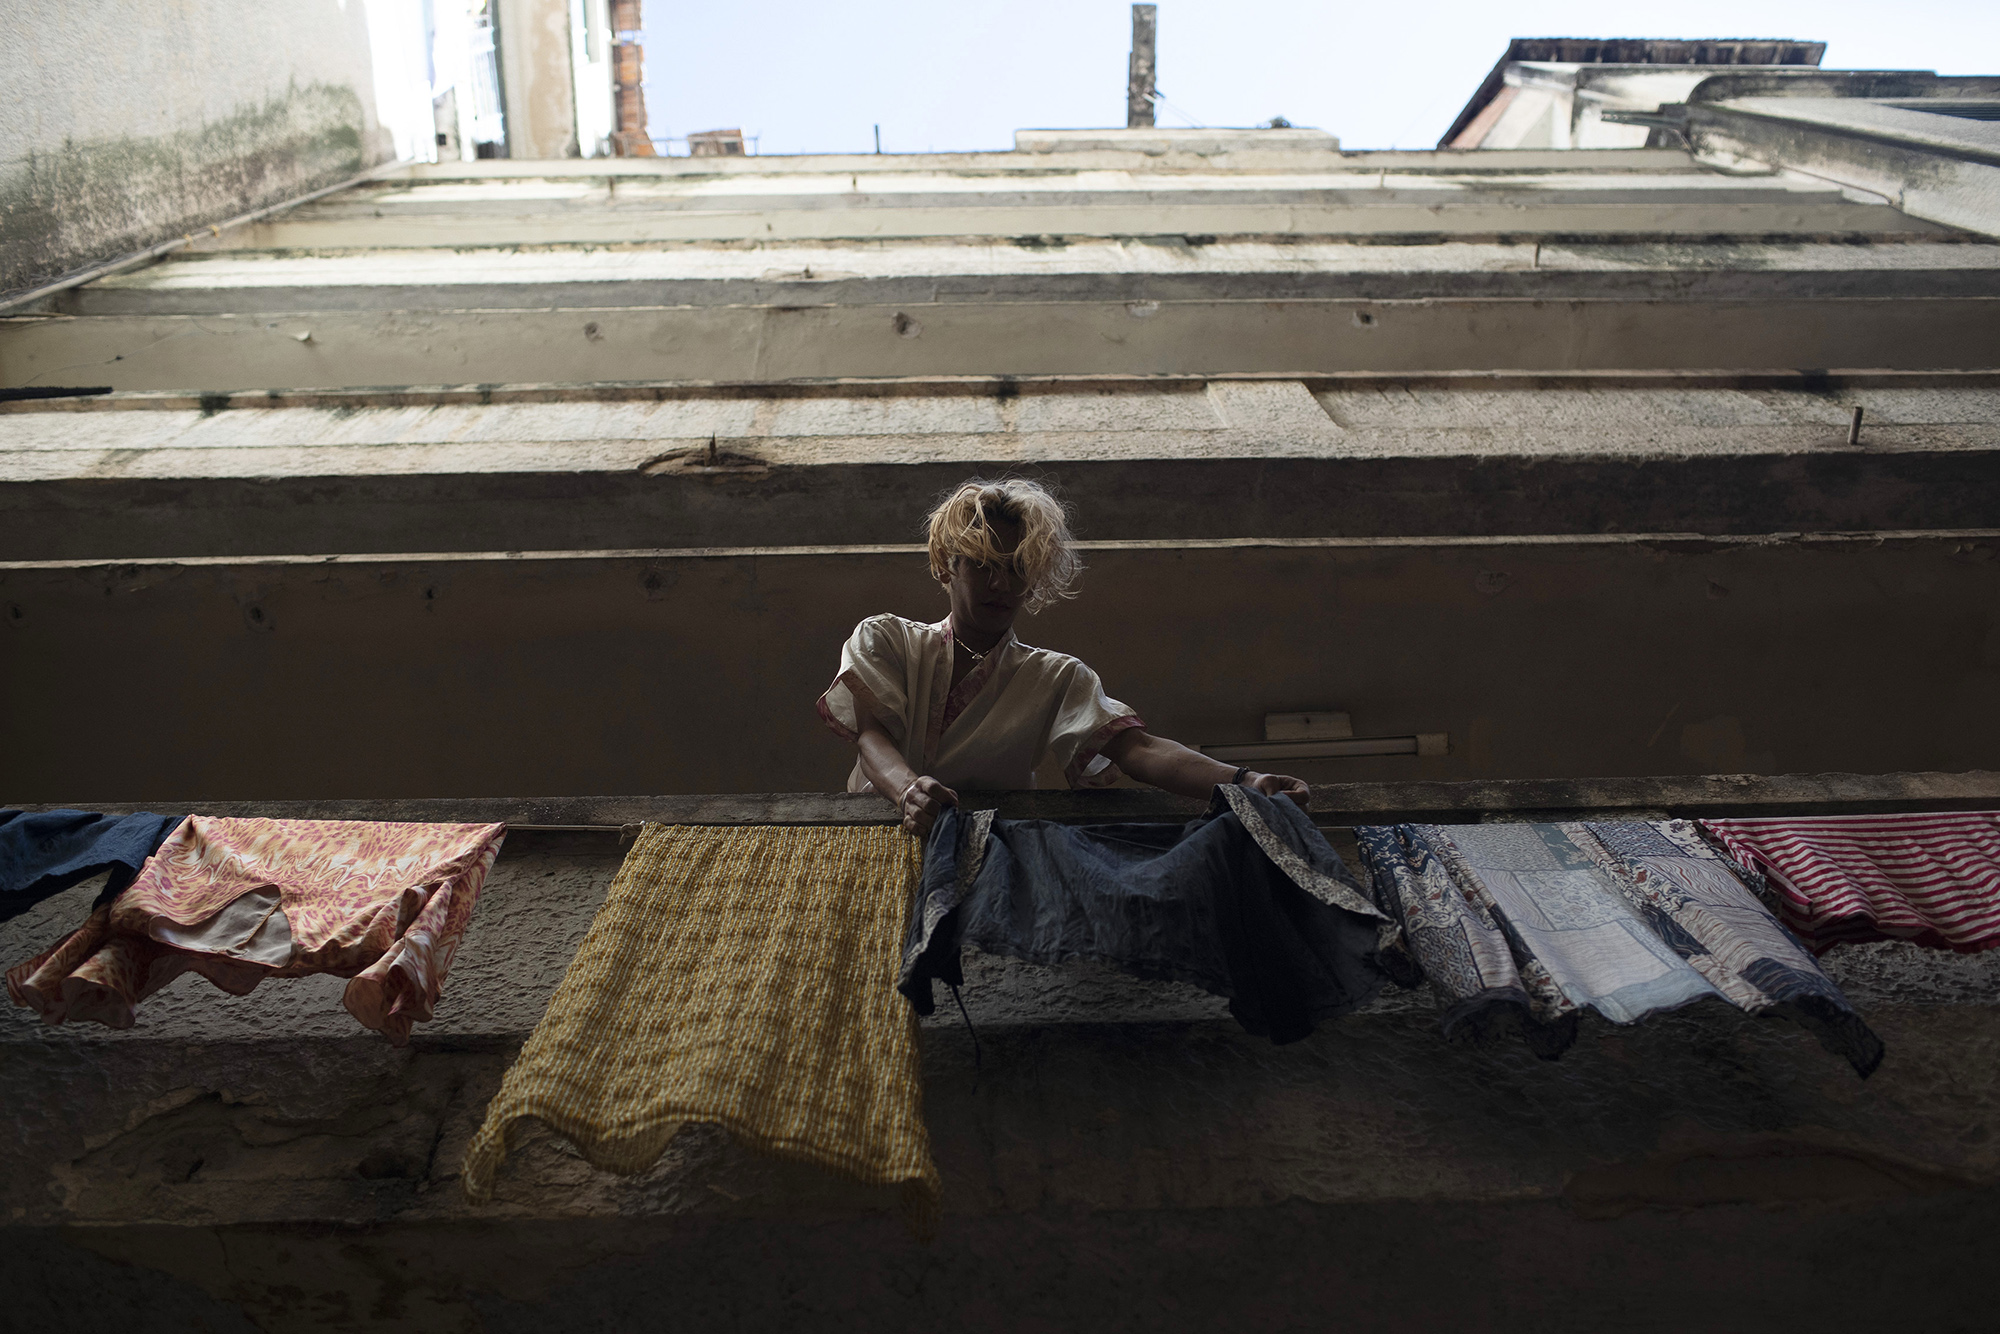 мTransgender Alex hangs clothes out to dry at the squat known as Casa Nem in Rio de Janeiro, Brazil, Wednesday, July 8, 2020. In 2016, members of the LGBTQ community led by Indianara Siqueira took over the balconied building with small bedrooms, shared bathrooms and a big common kitchen